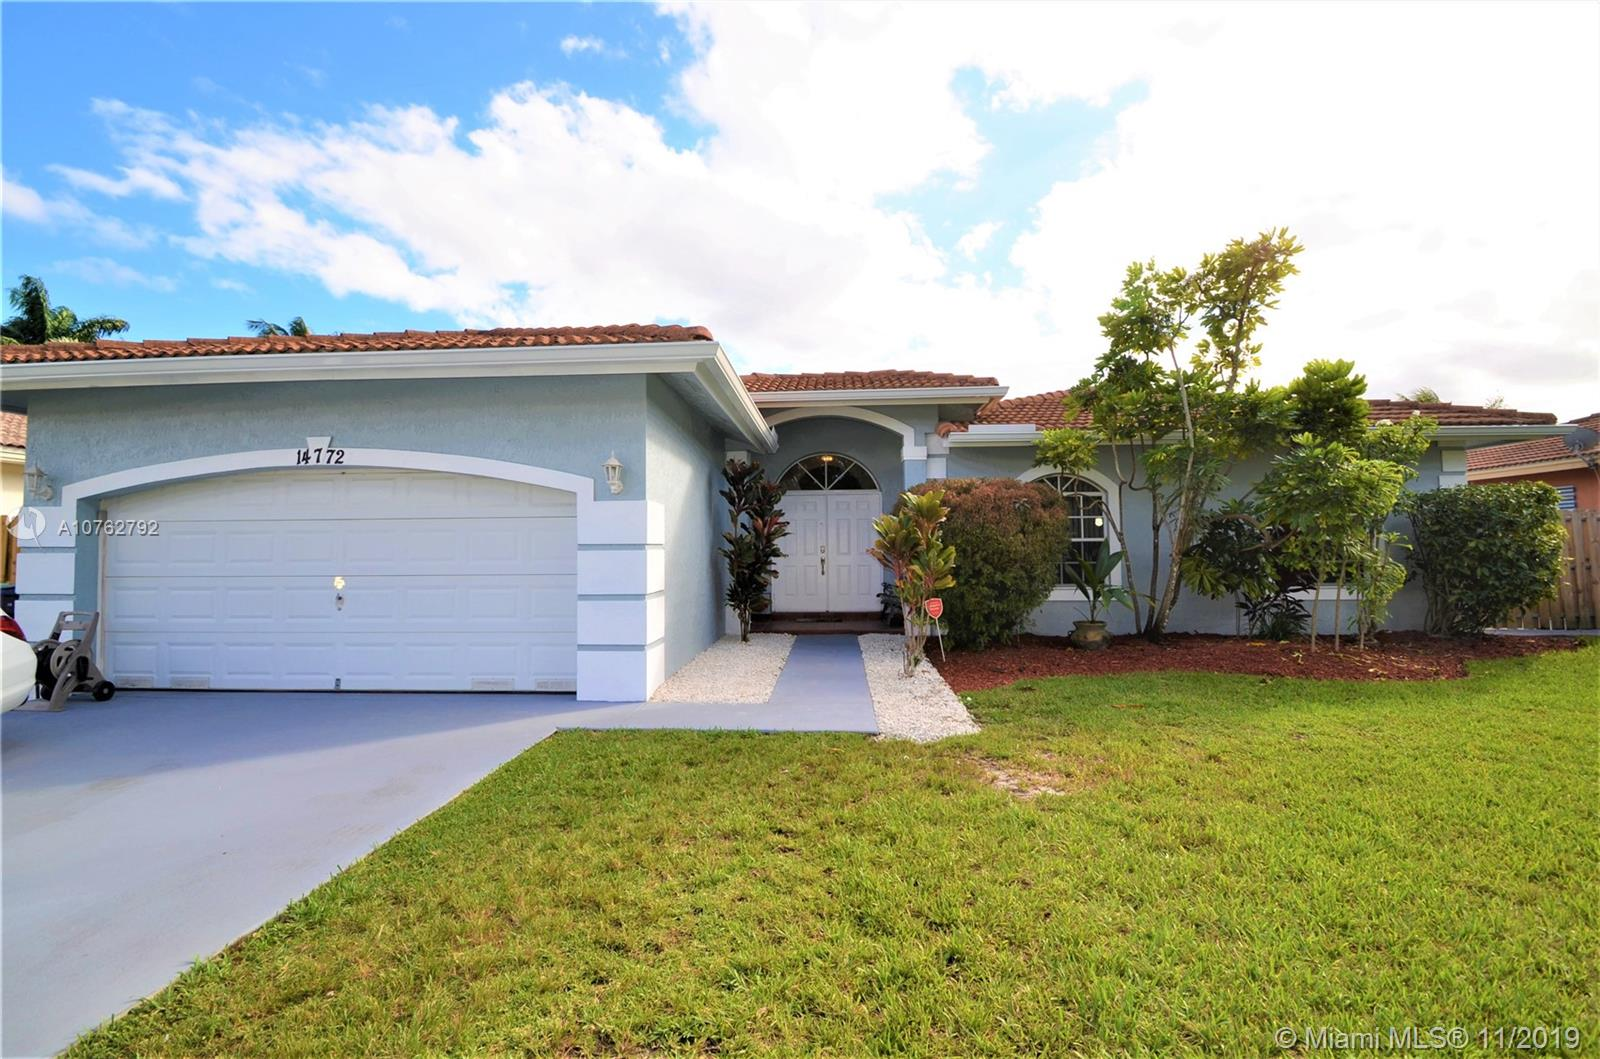 14772 SW 143rd Ter, Kendall in Miami-dade County County, FL 33196 Home for Sale